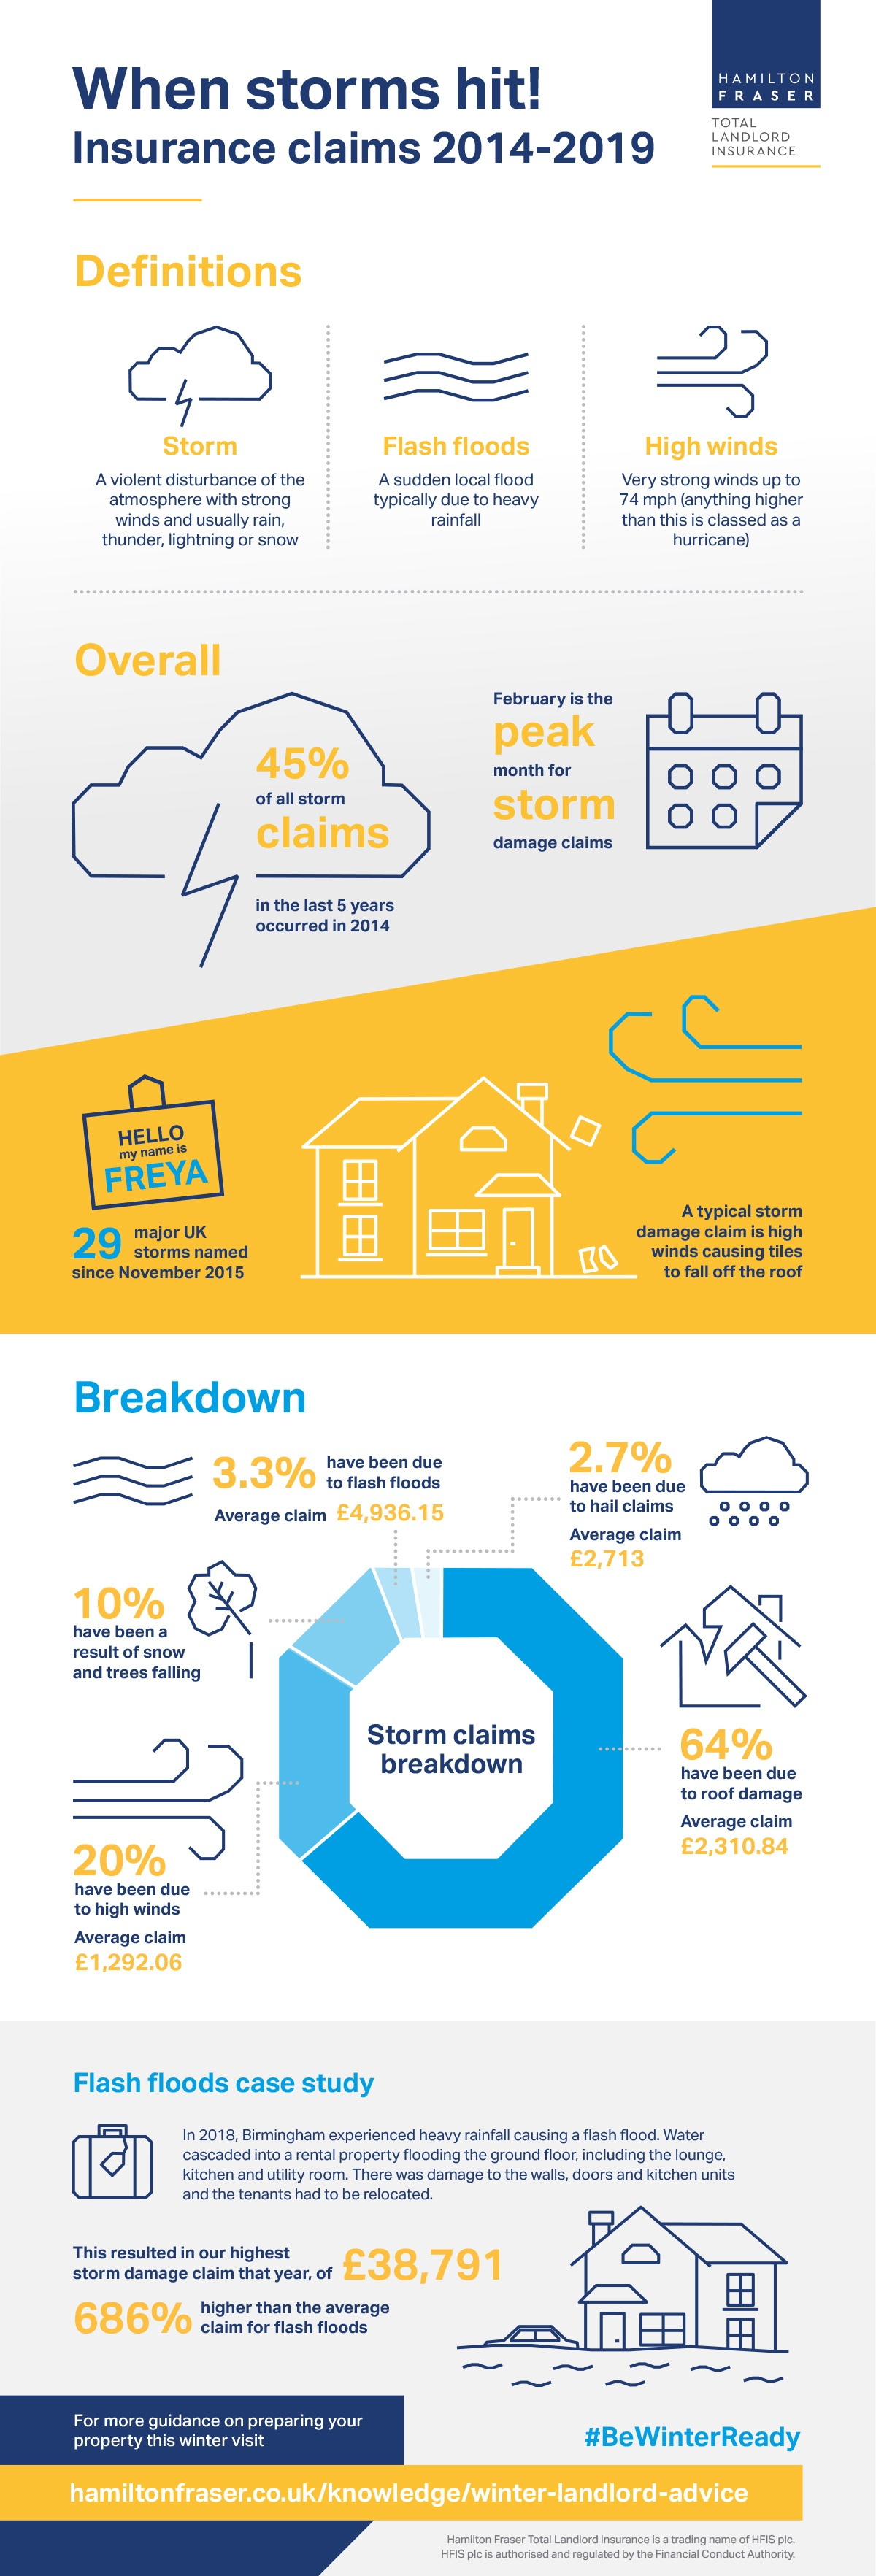 Infographic: When storms hit! Insurance claims 2014-2019